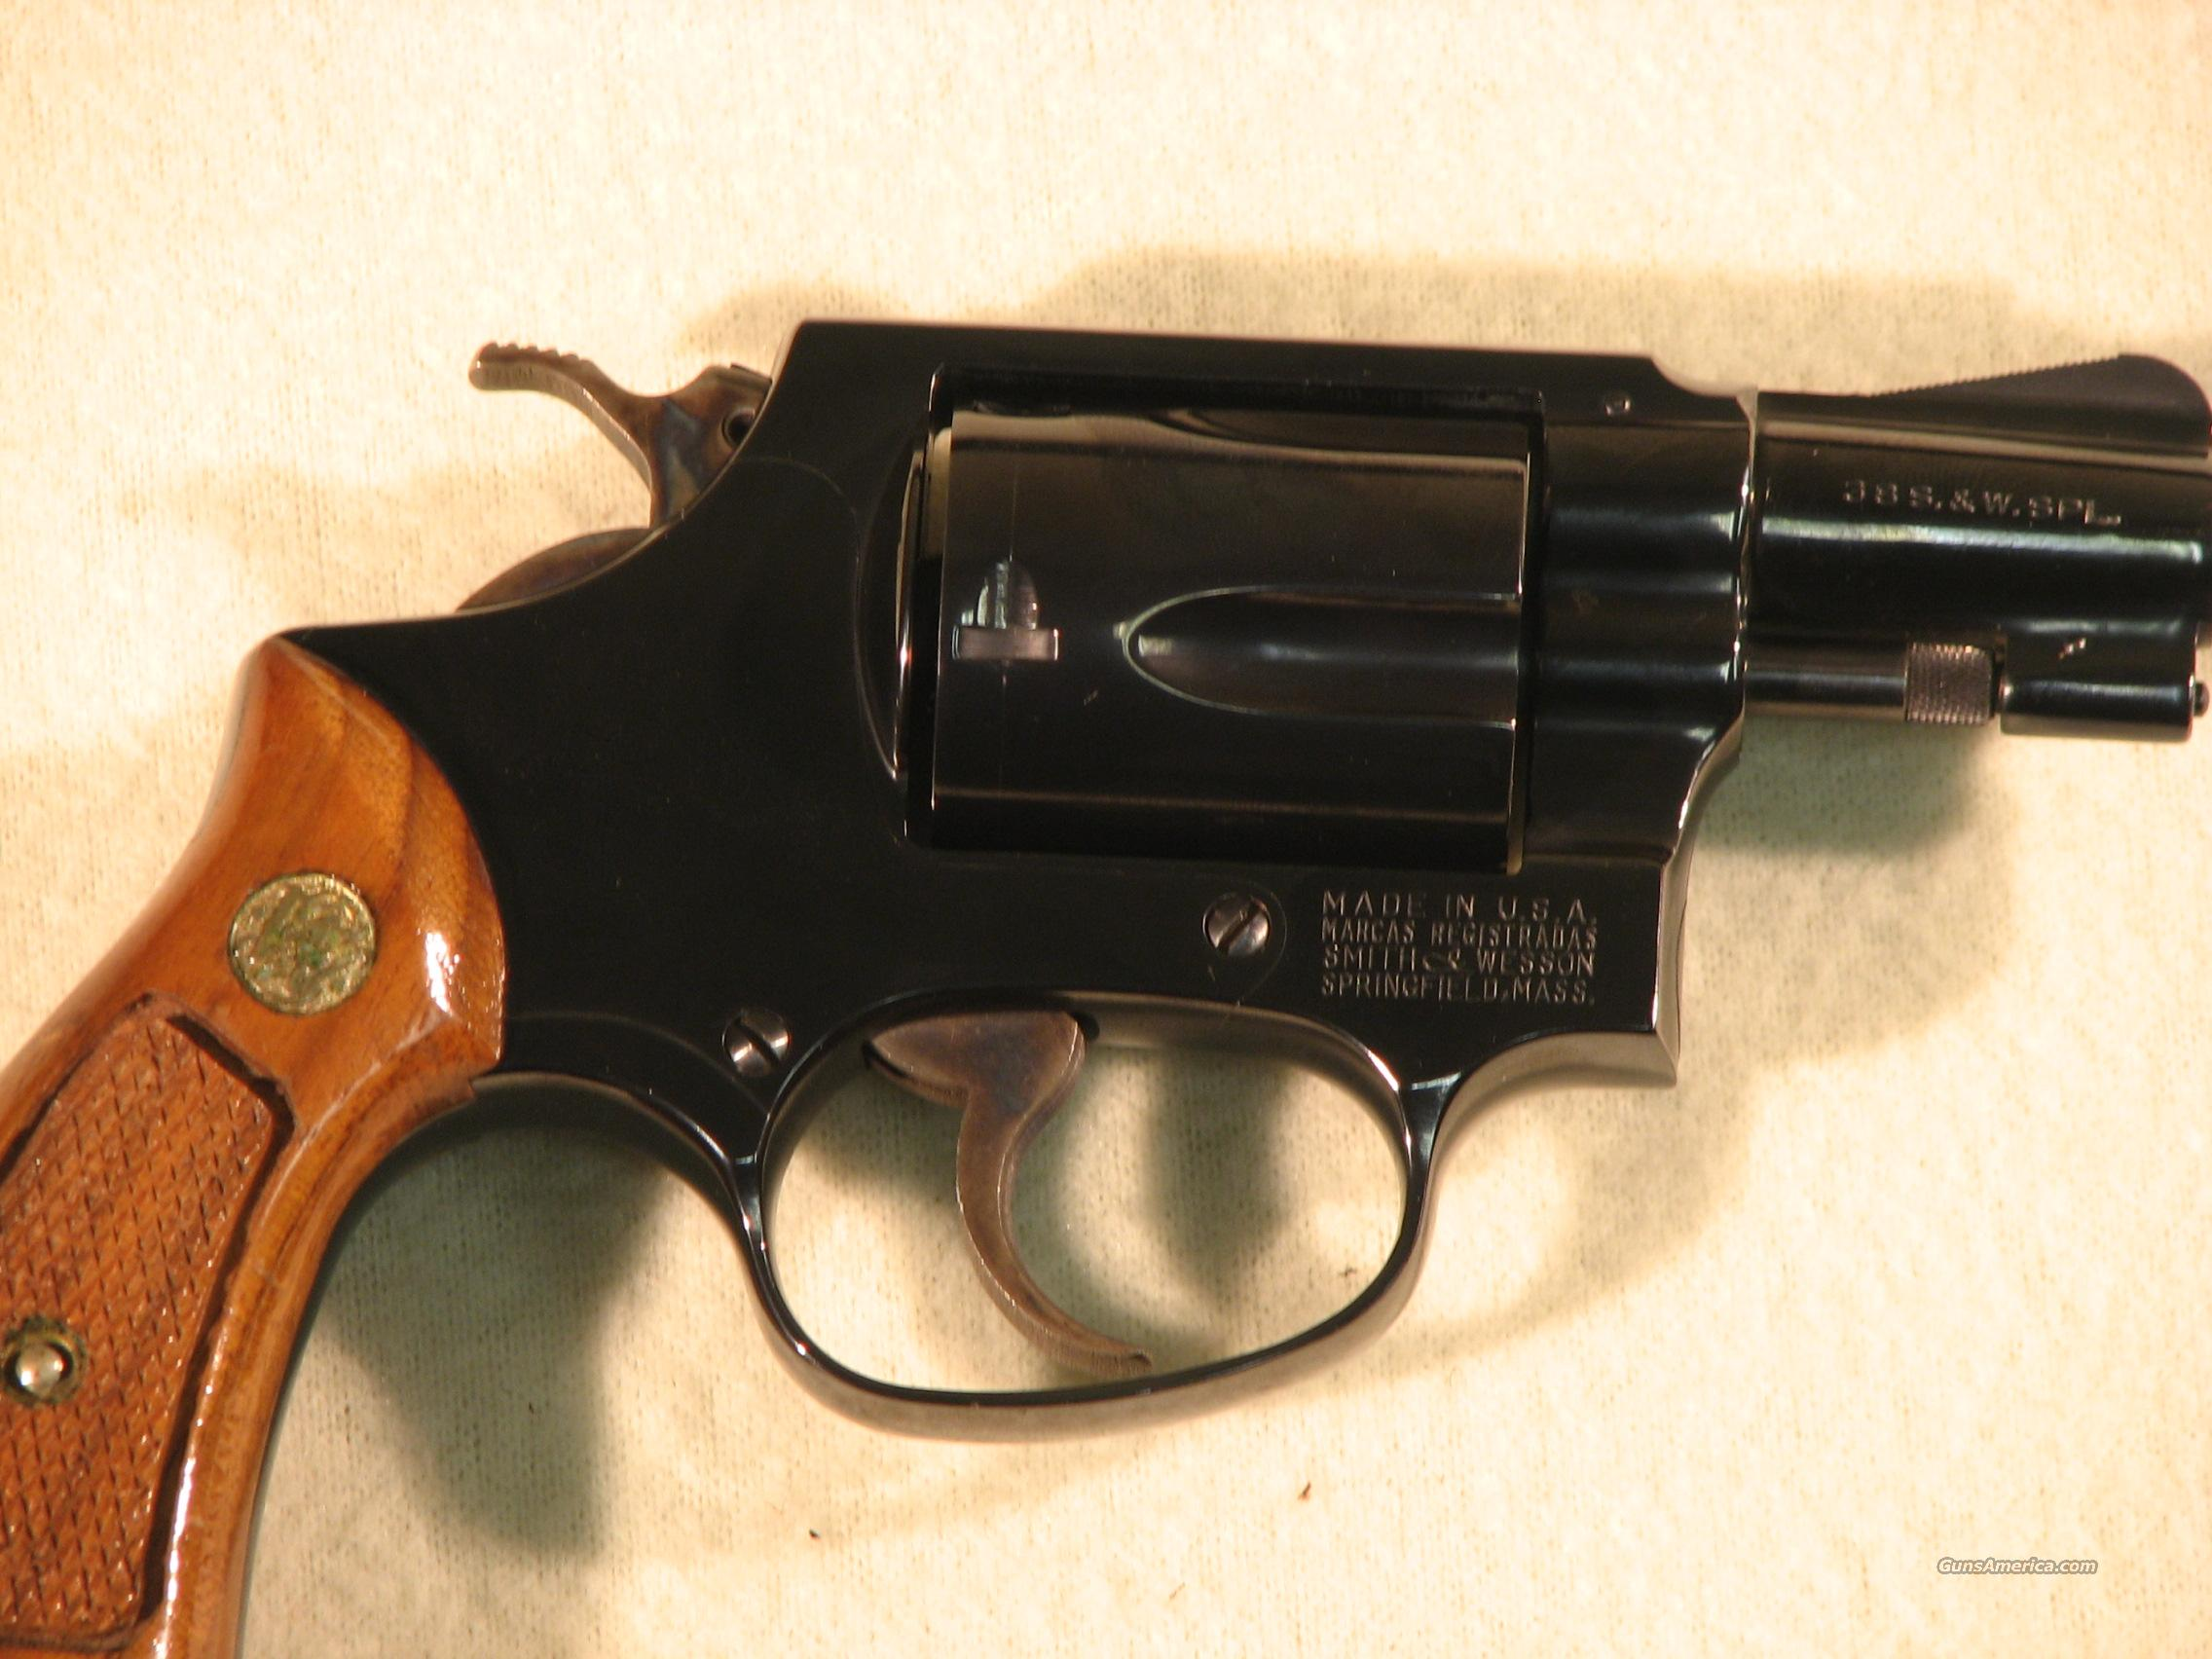 SMITH & WESSON 36 .38 Special LIKE NEW!  Guns > Pistols > Smith & Wesson Revolvers > Pocket Pistols